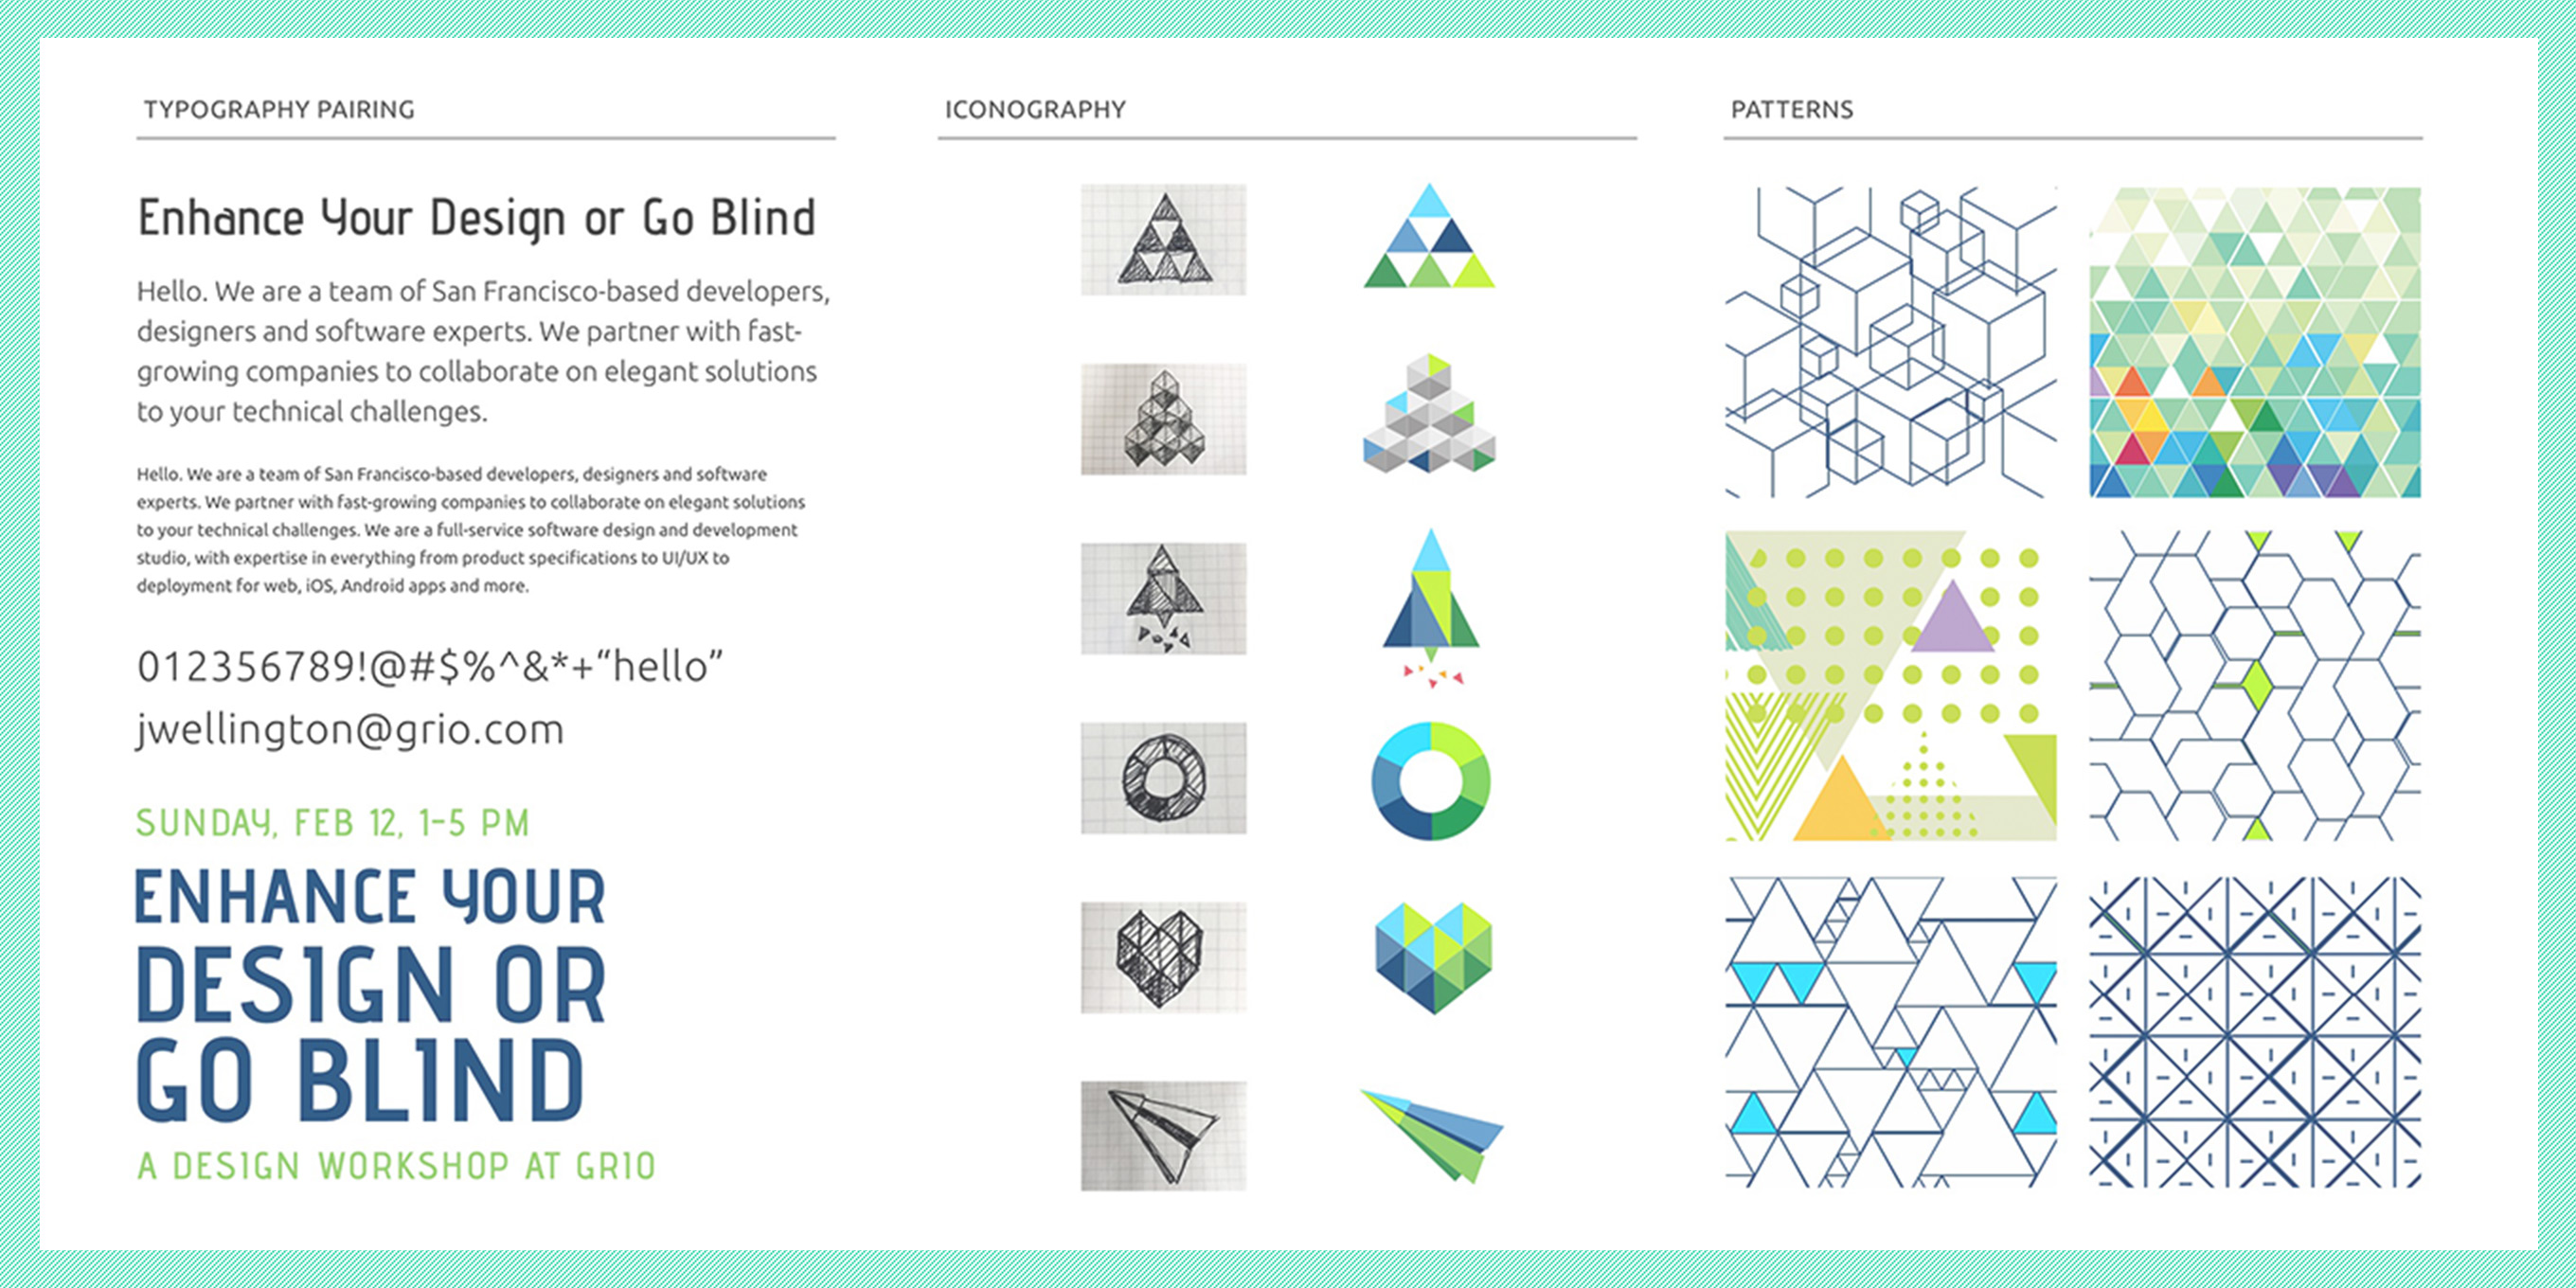 Design elements from the toolkit